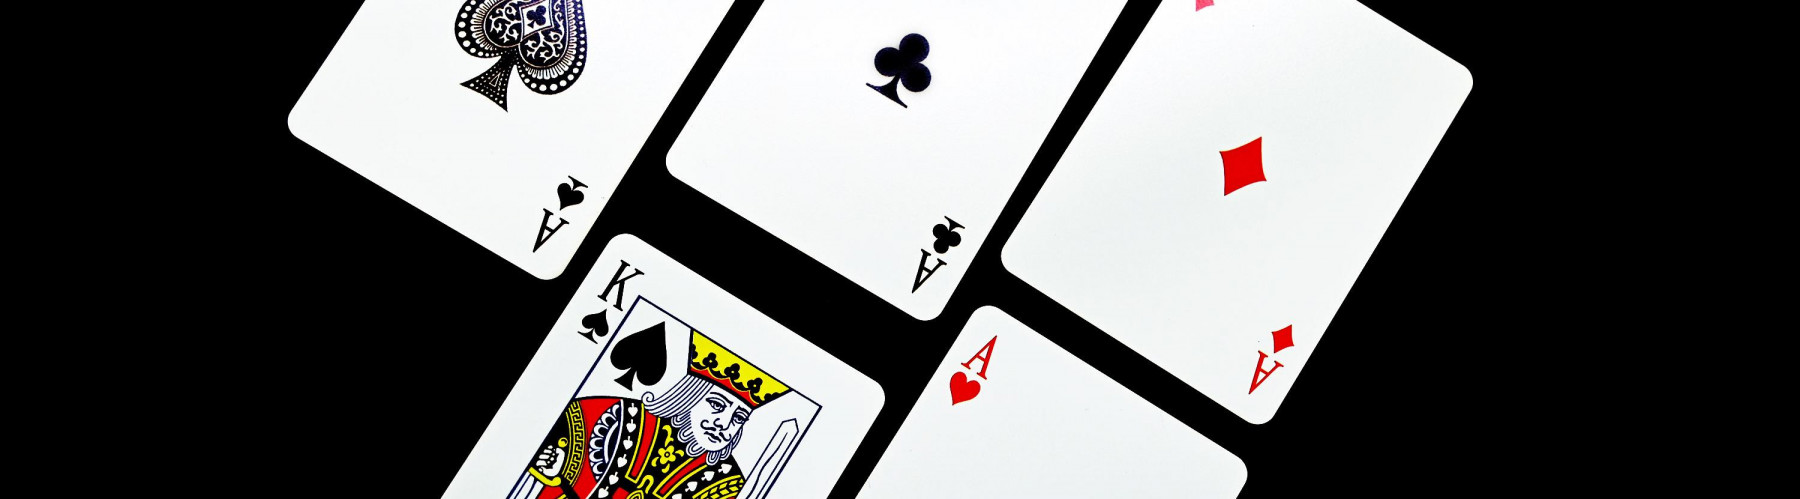 Great hacks for poker players